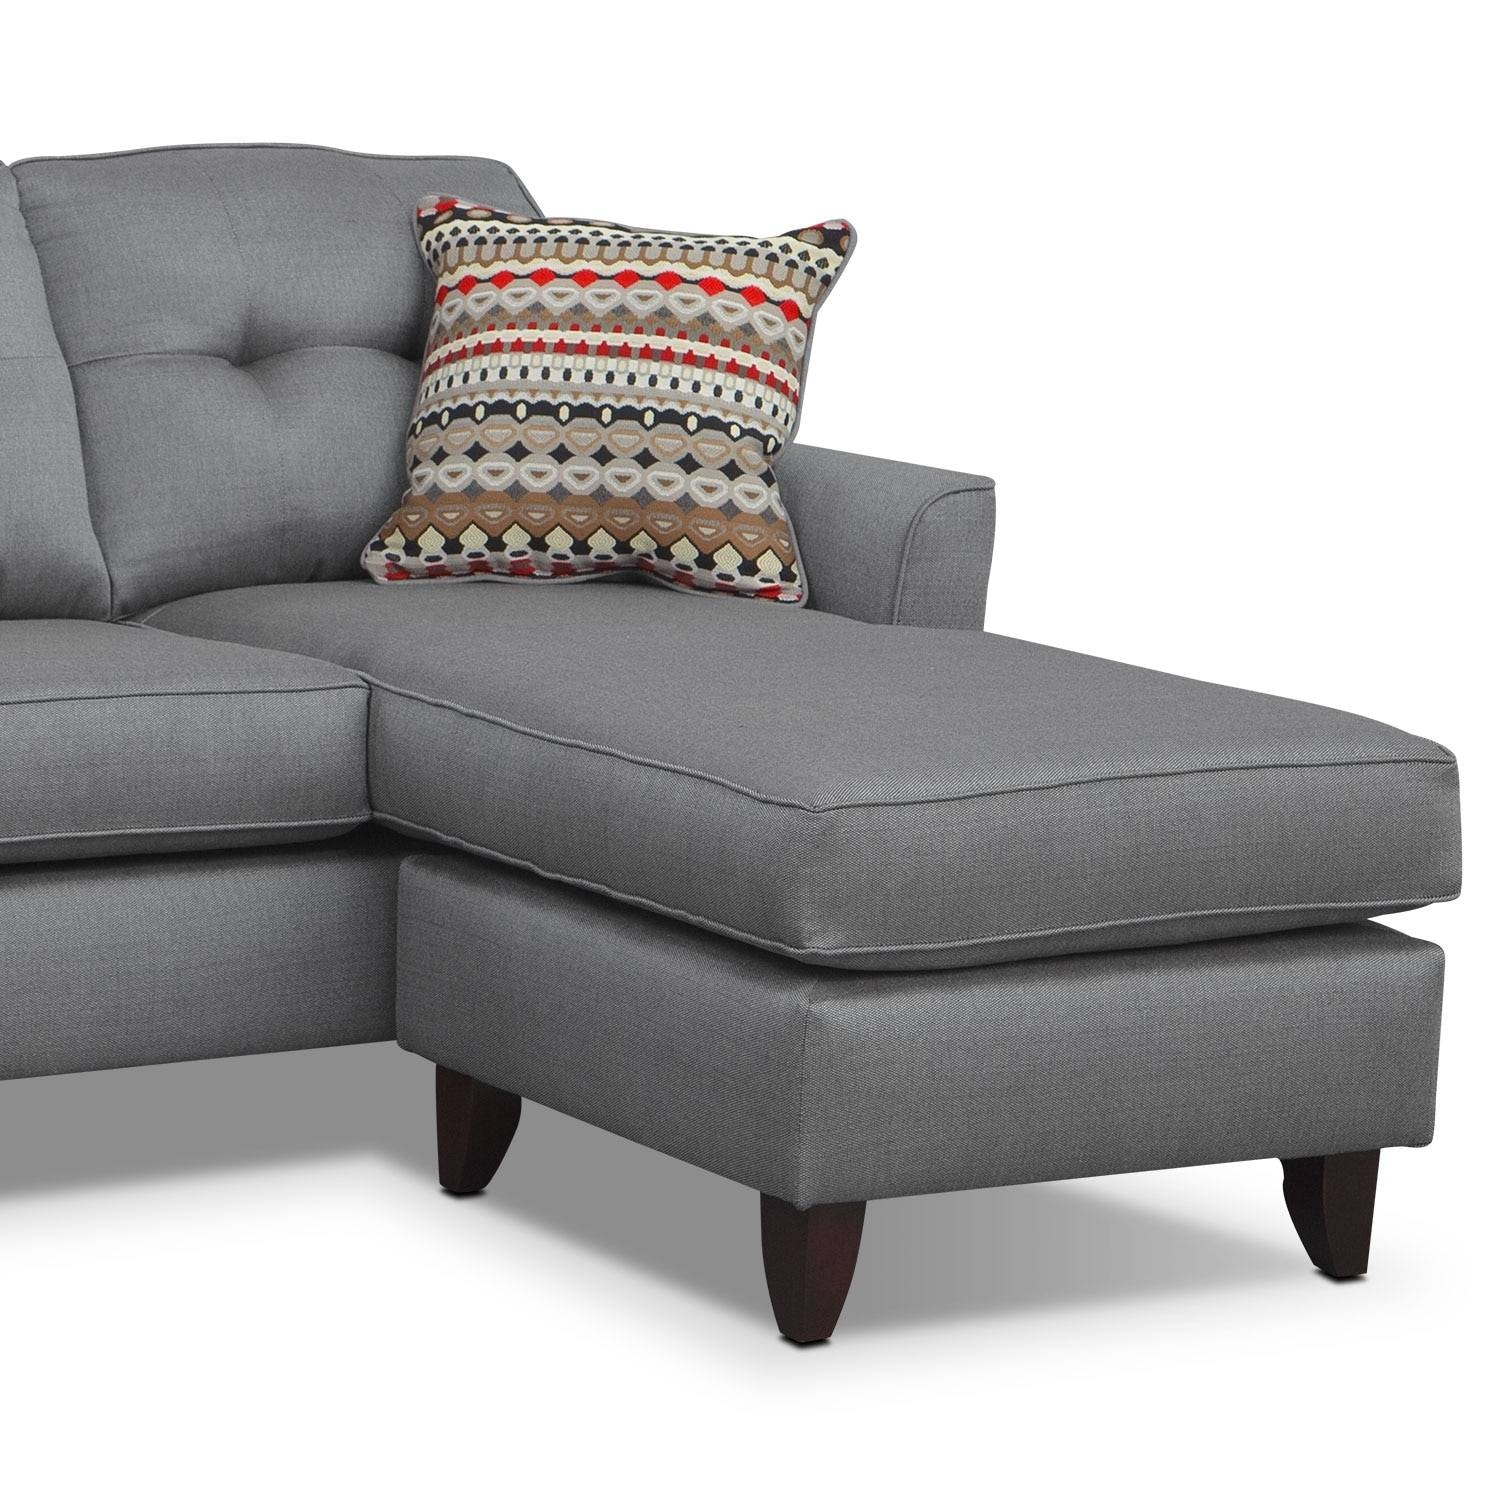 Sofas Center : Grey Sofa Withe Uk Gray Sectional For Salegrey throughout Charcoal Grey Sofas (Image 29 of 30)